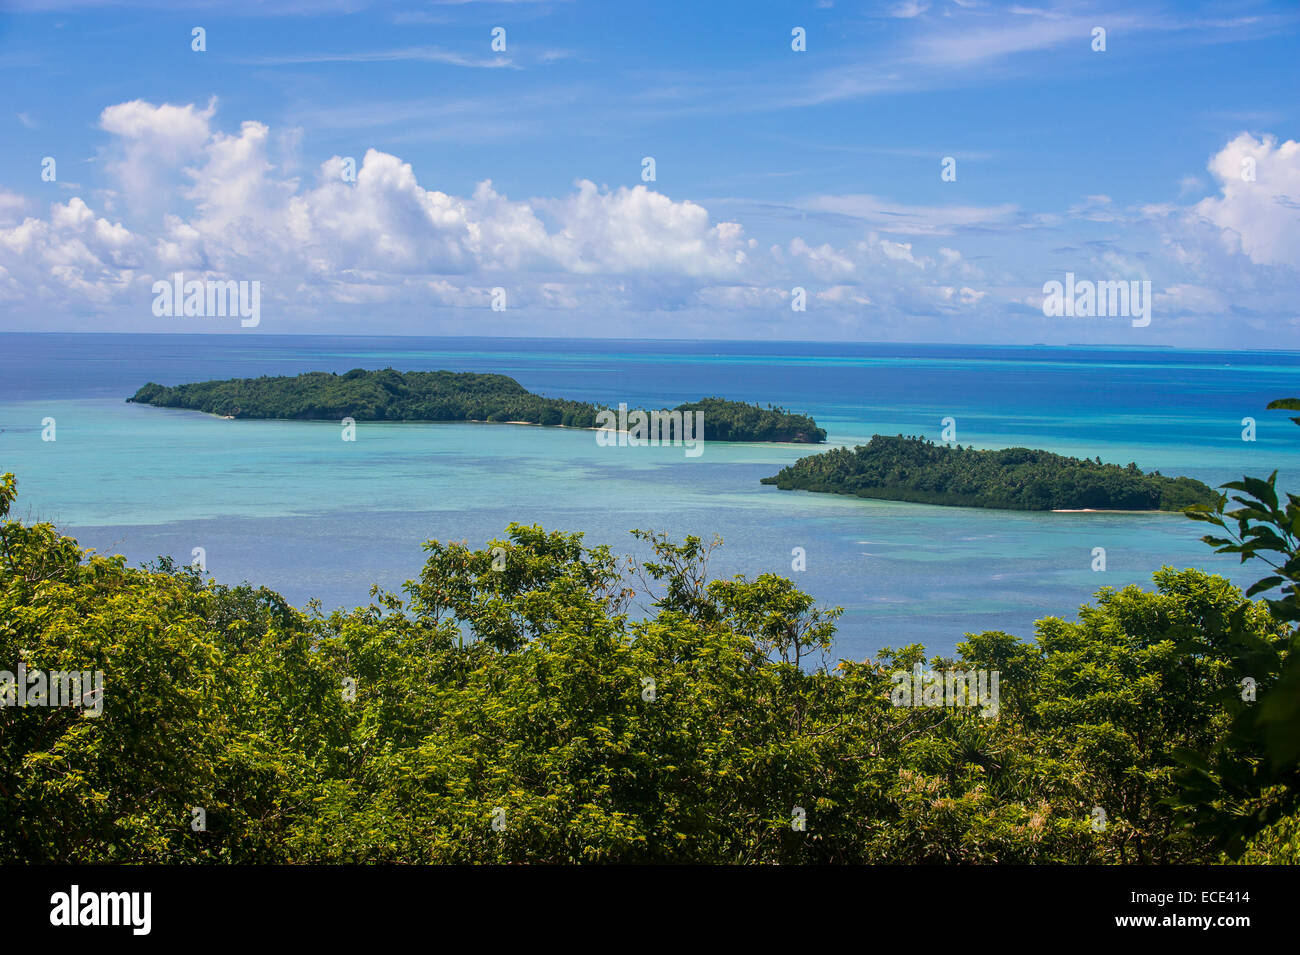 View over Babeldaob island and some islets, Palau, Micronesia - Stock Image